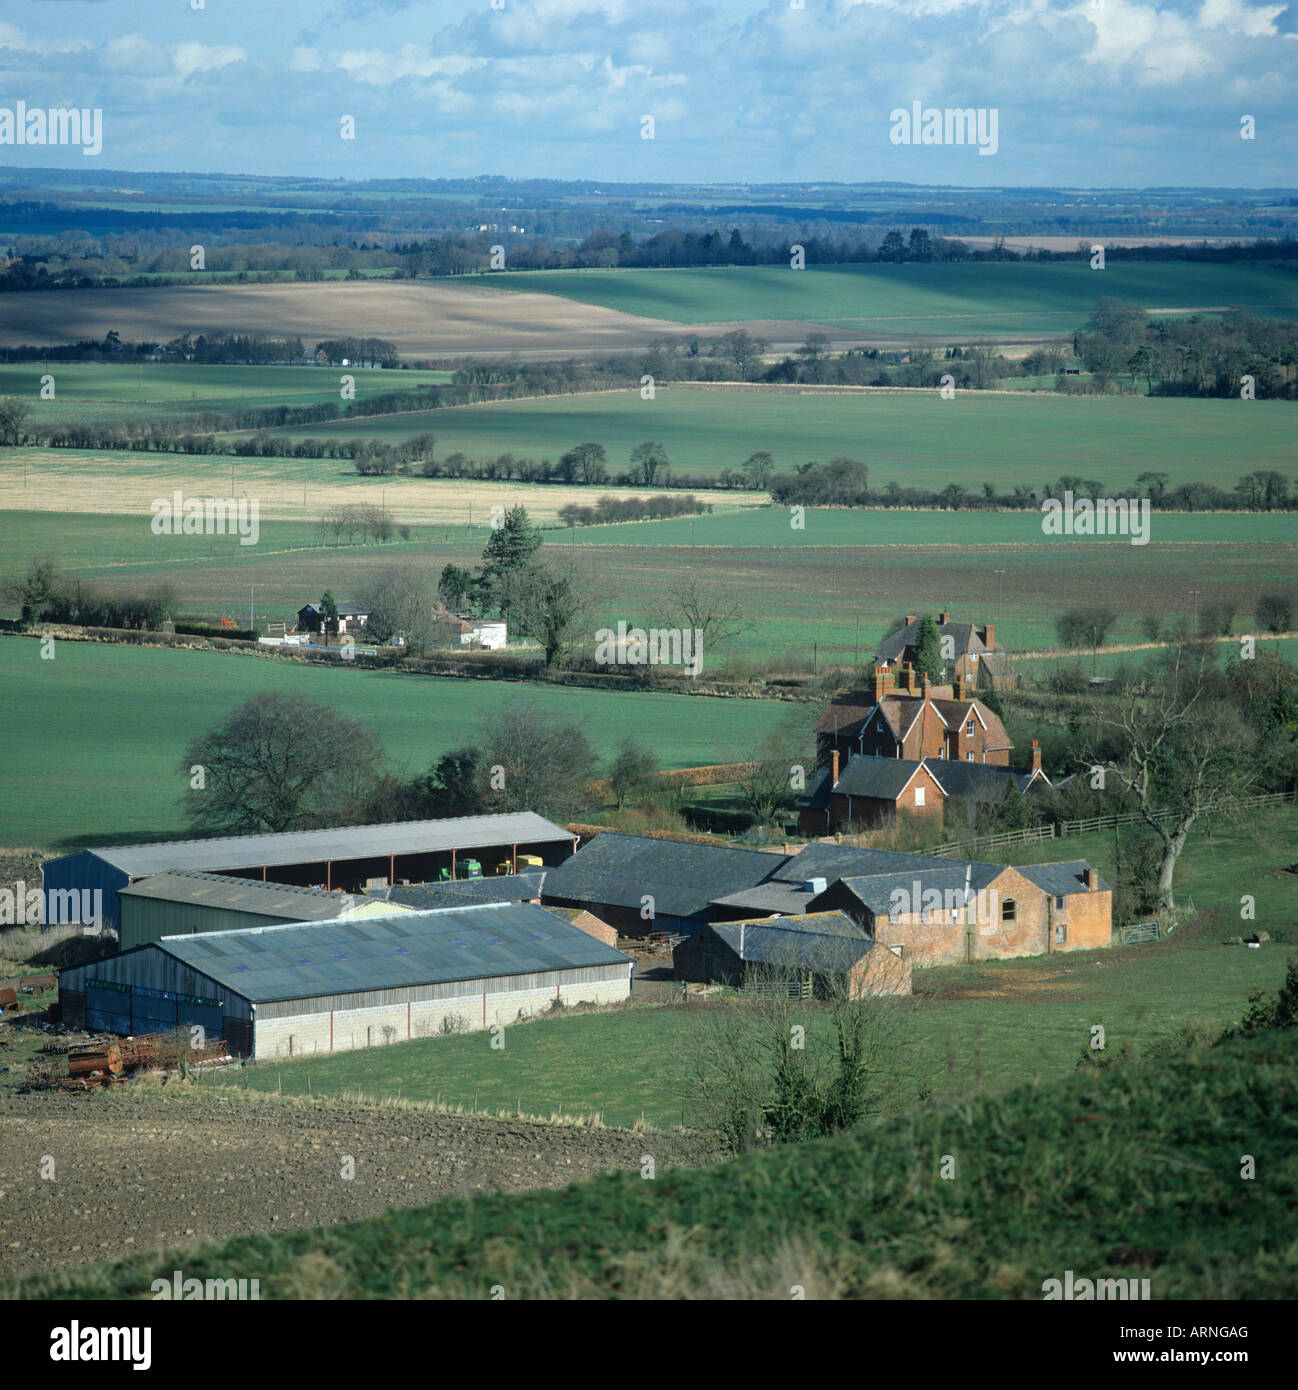 Farm buildings and farmland at Shalbourne near Hungerford, West Berkshire - Stock Image